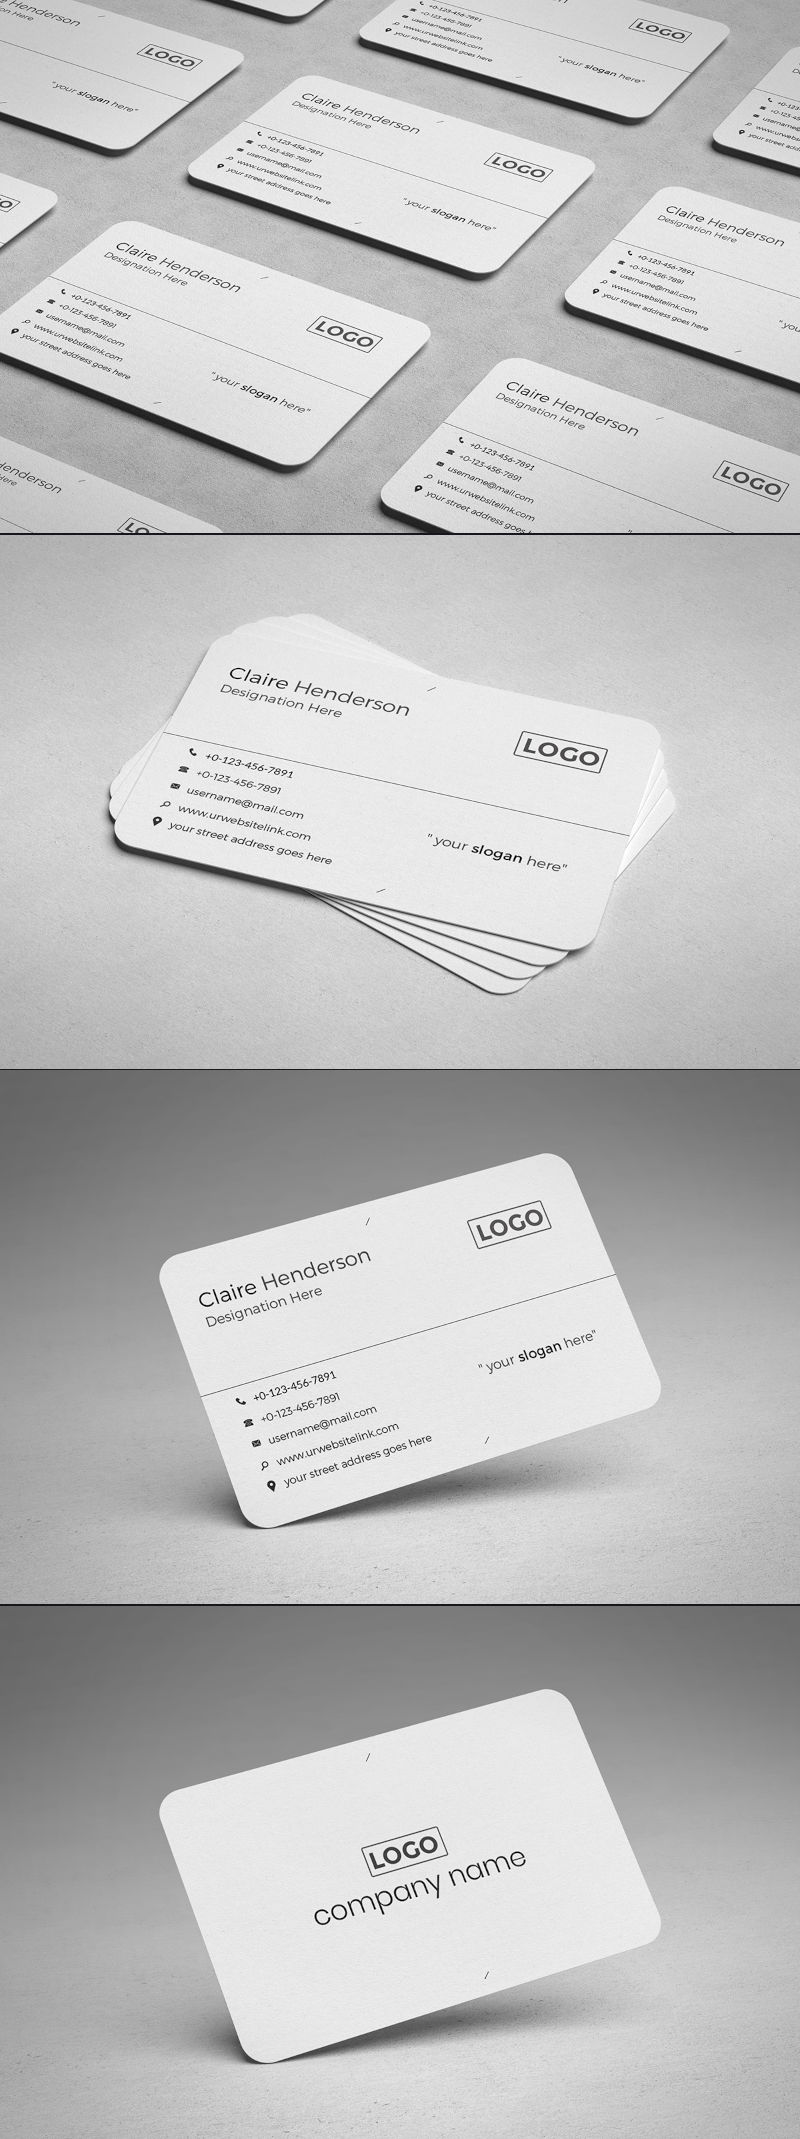 Free Rounded Business Card PSD Template - Preview